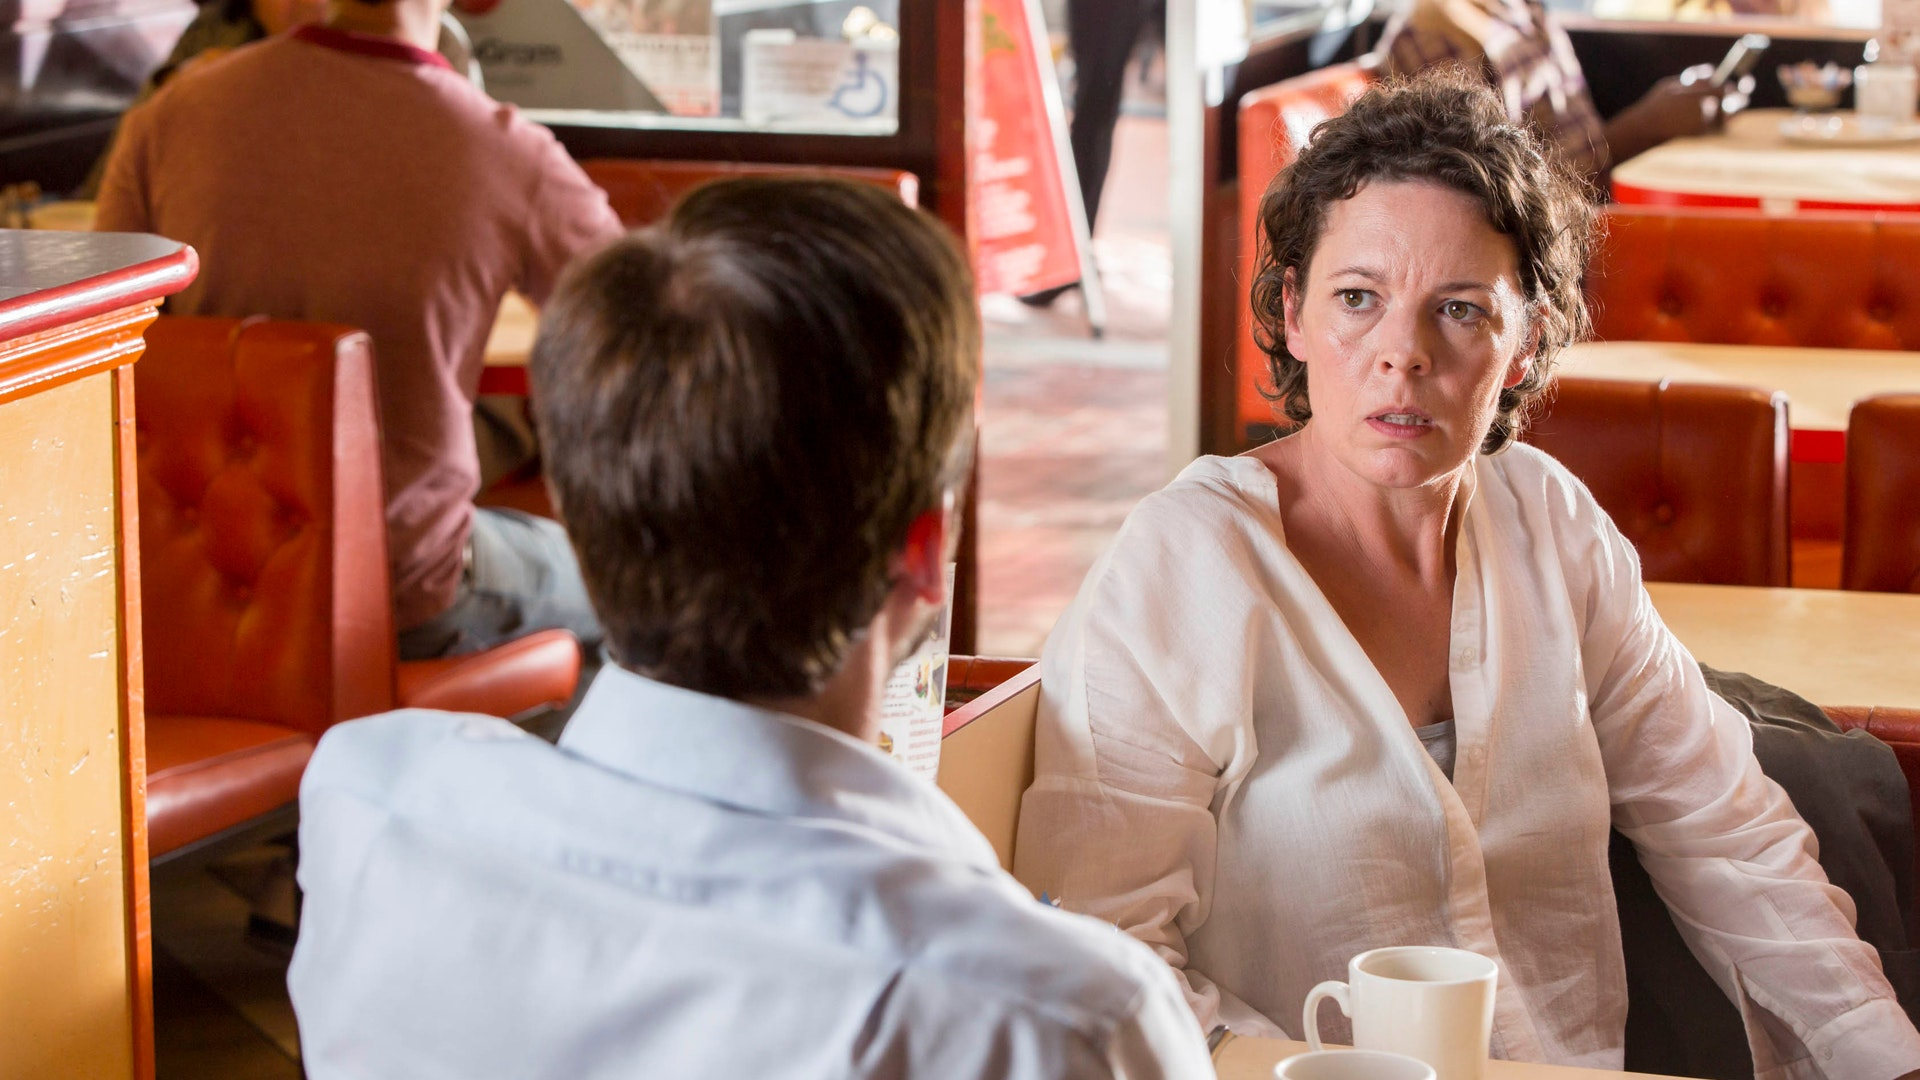 embargoed_until_20th_january_broadchurch_ep4_20